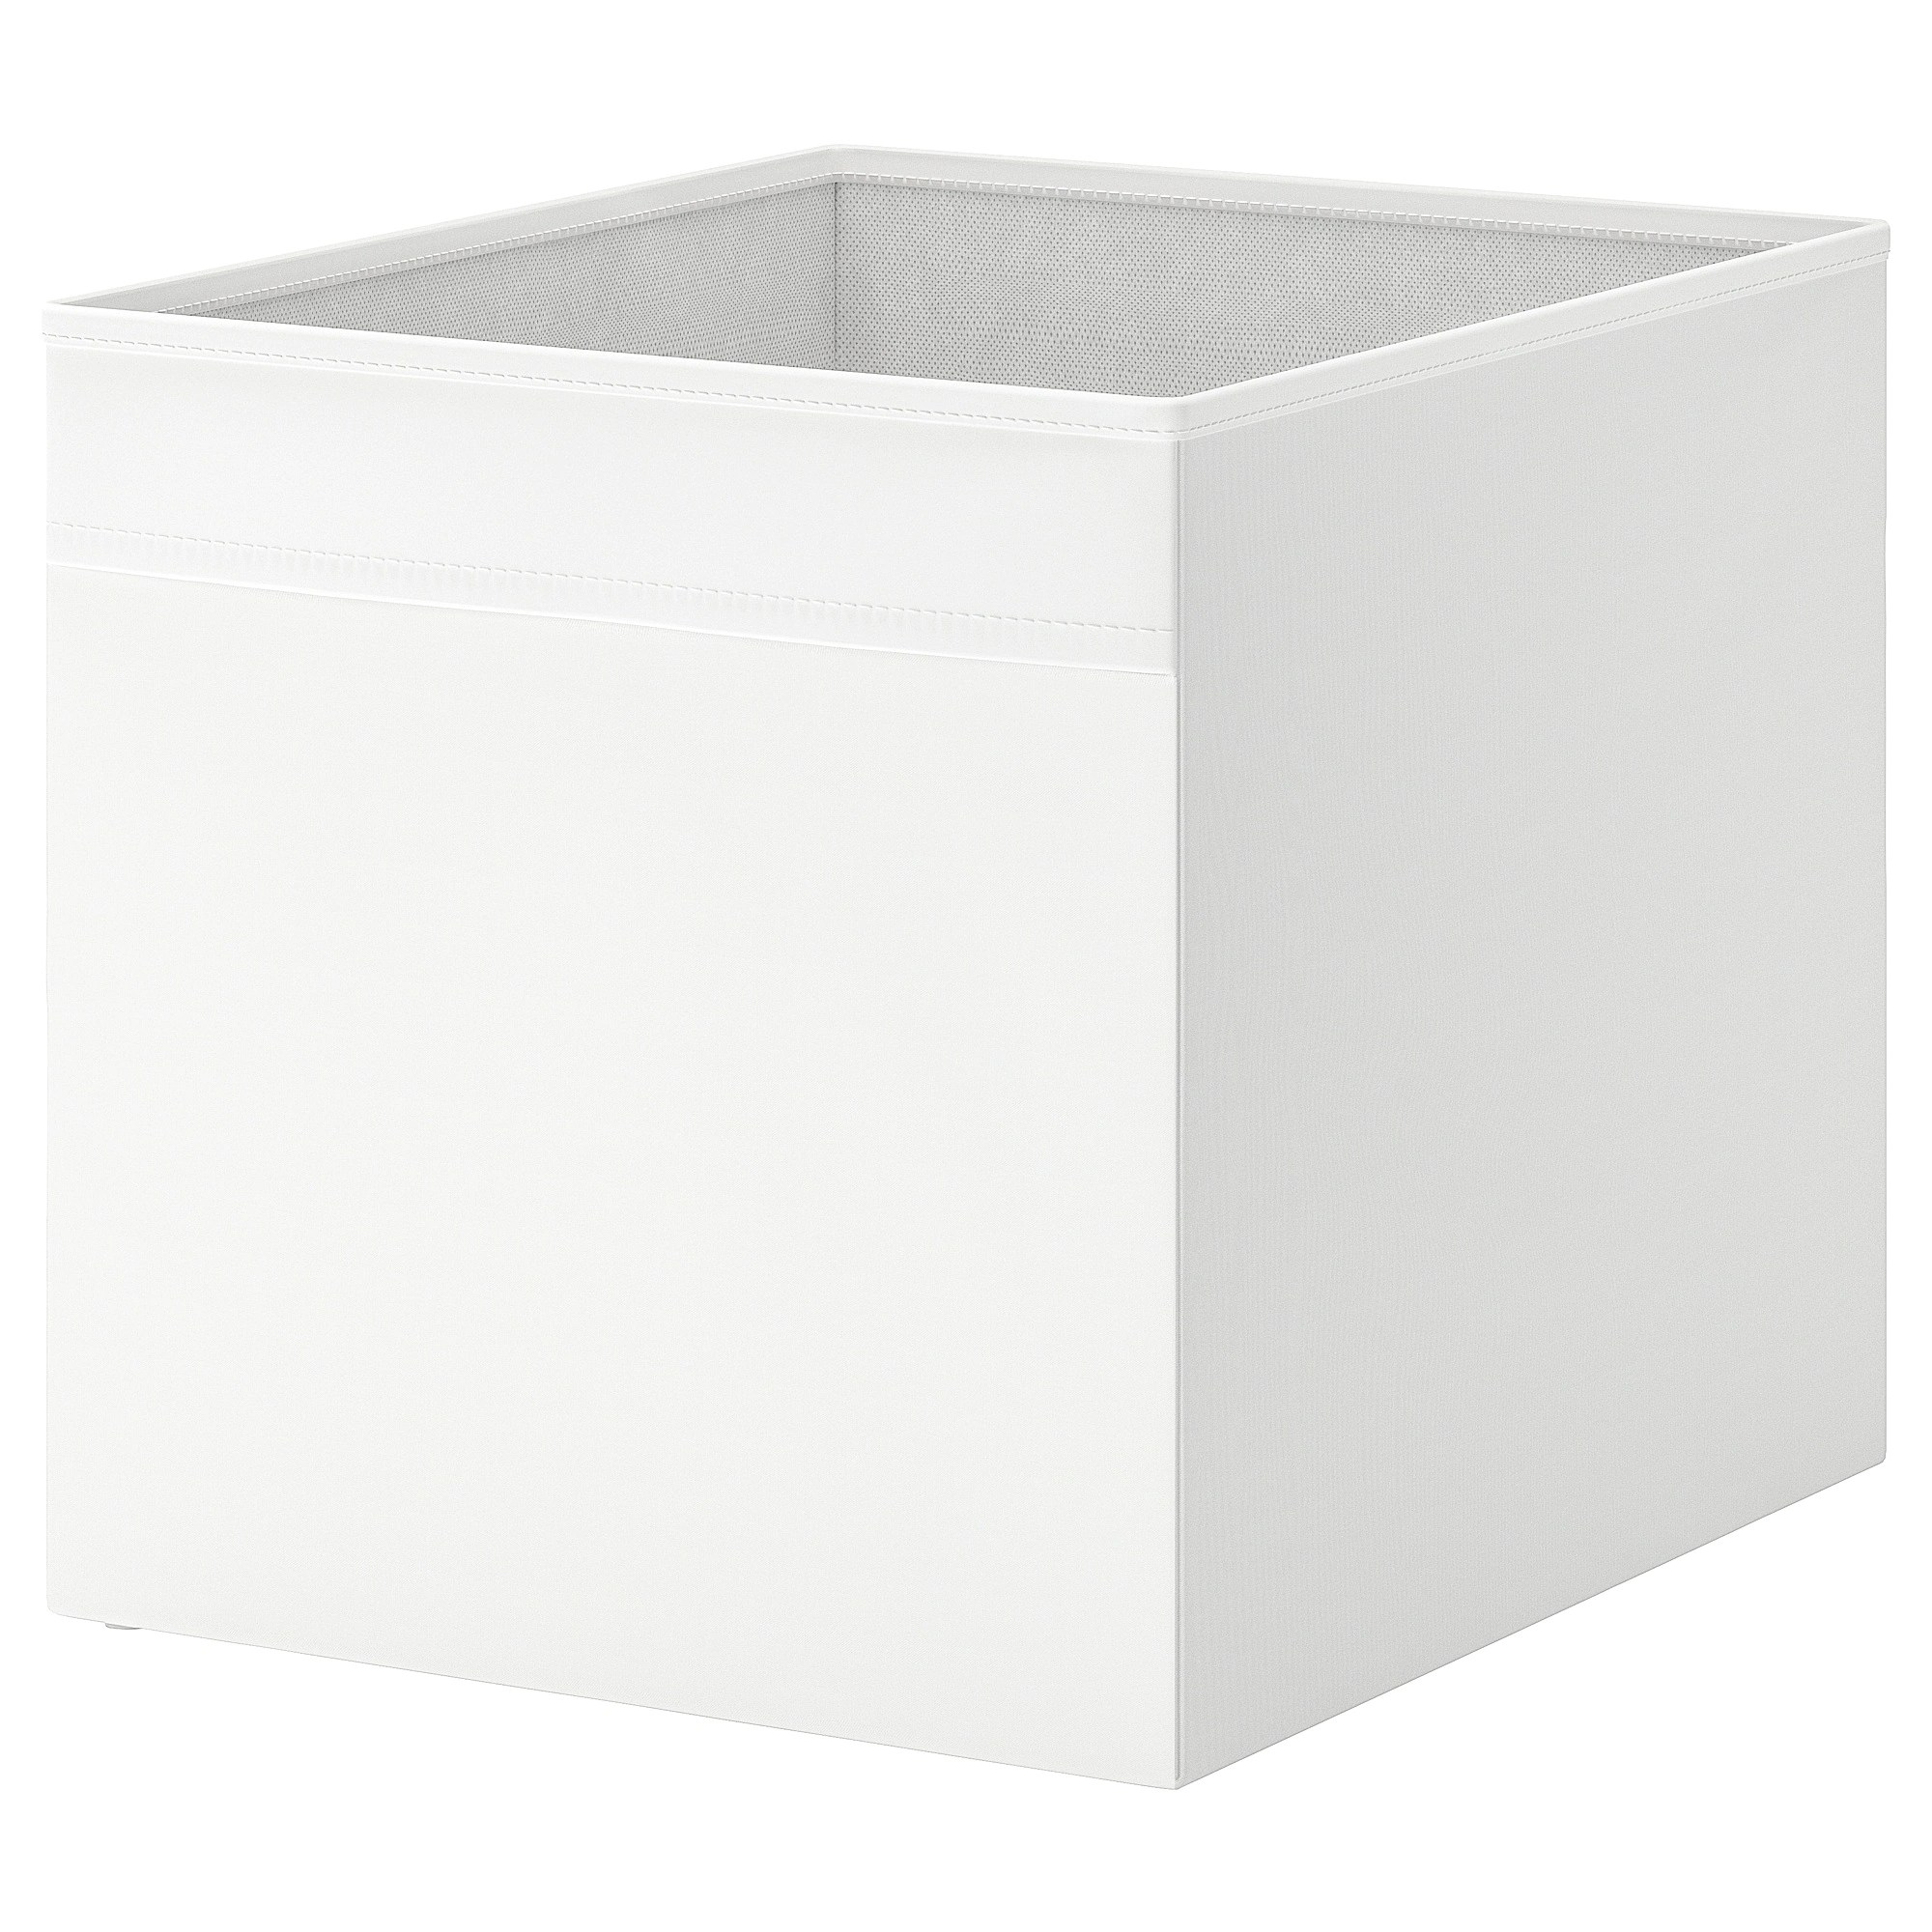 Small Storage Boxes Baskets Clothes Organisers Ikea